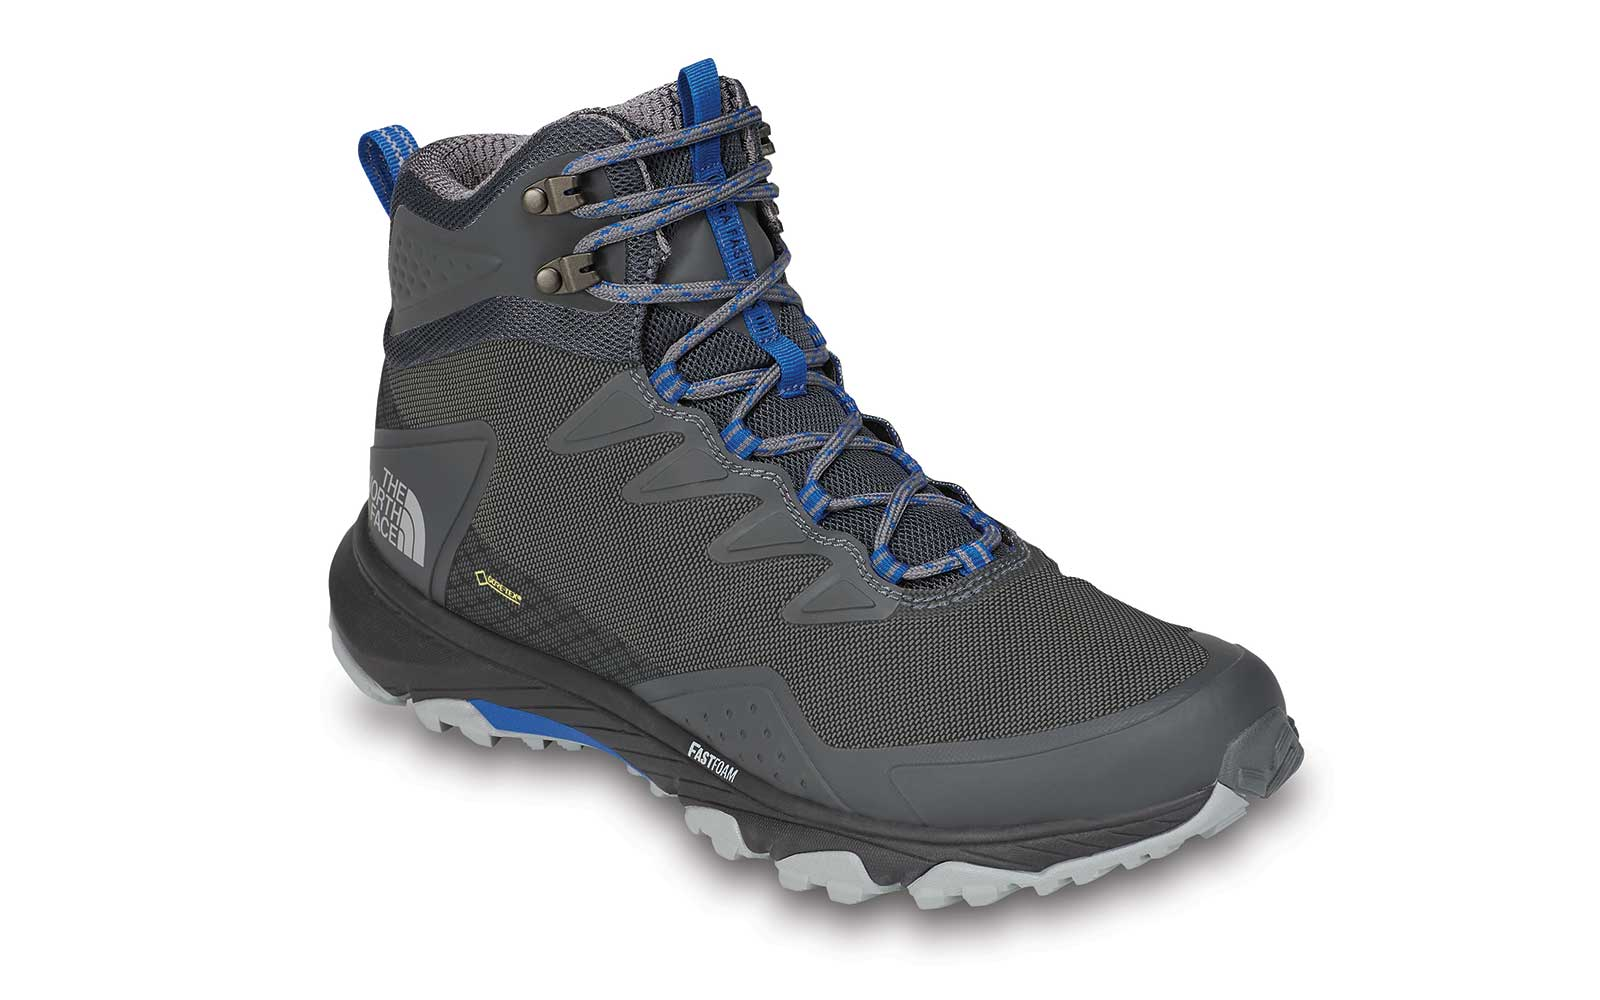 North Face hiking shoe